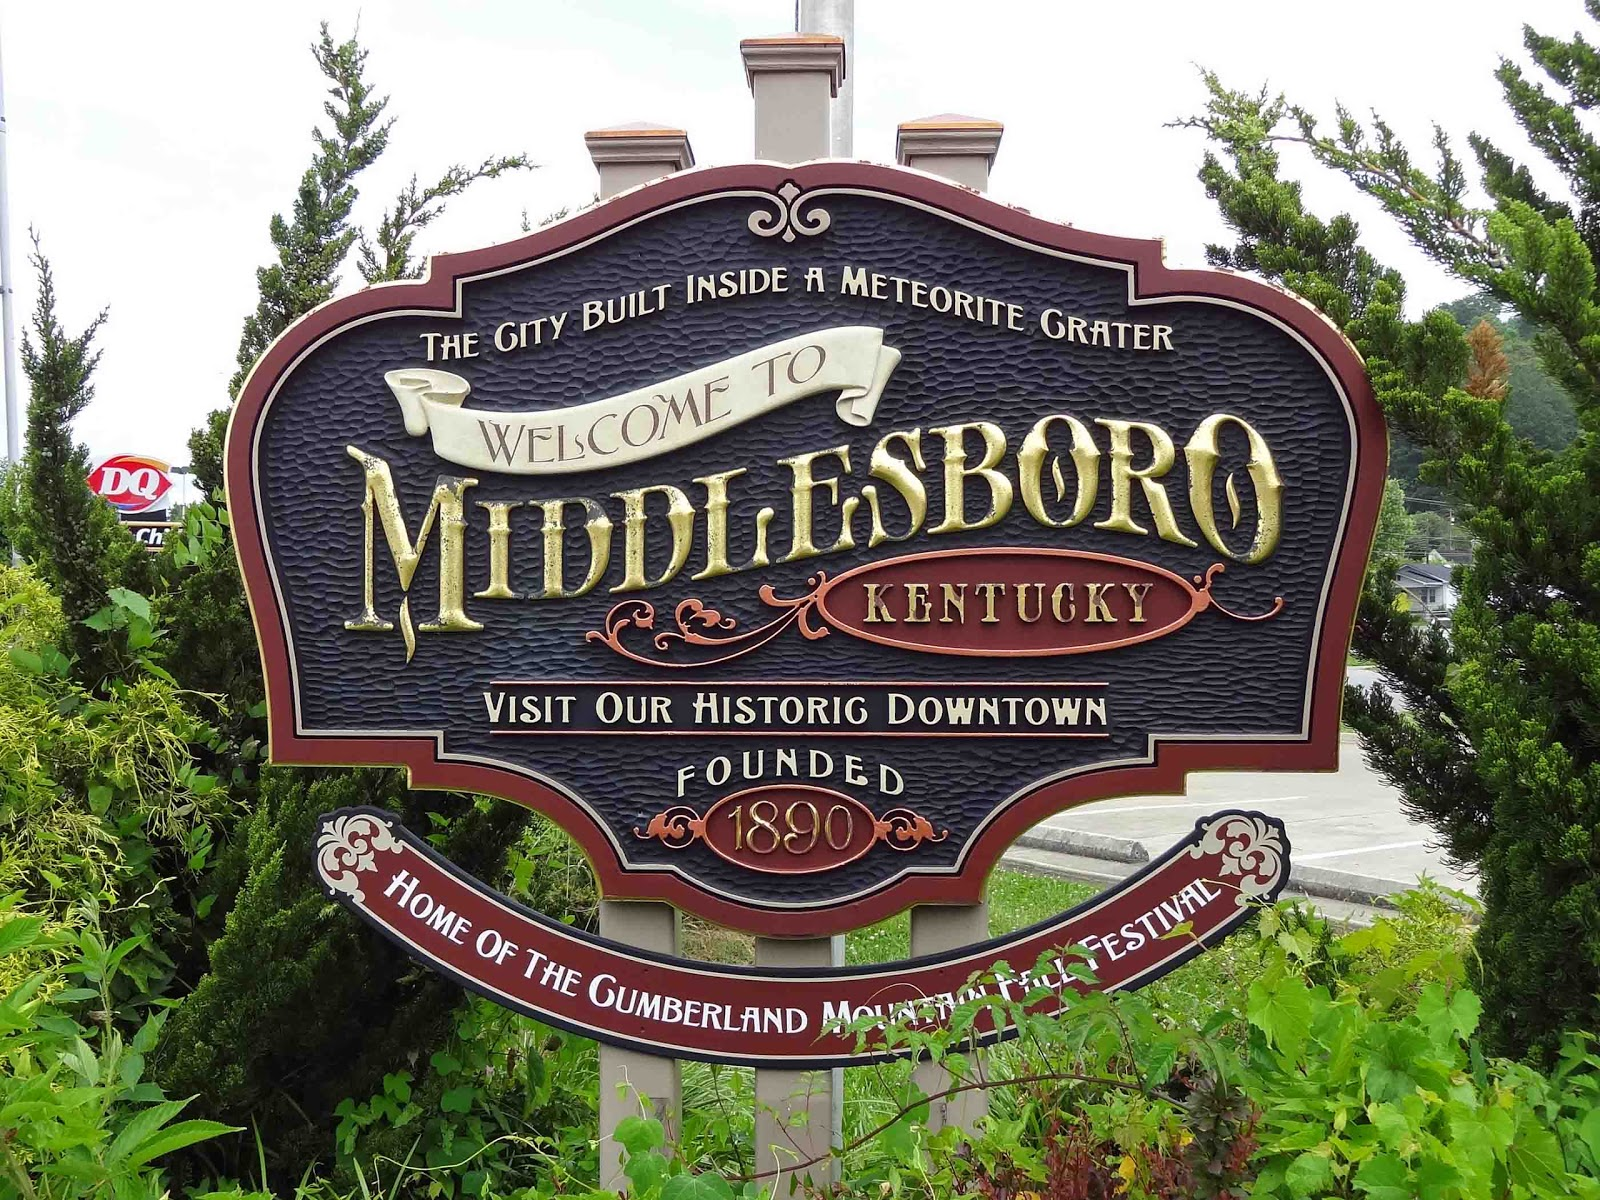 Middlesboro (KY) United States  city pictures gallery : ... OLD KENTUCKY HOME | Pinterest | Kentucky, England Uk and United States